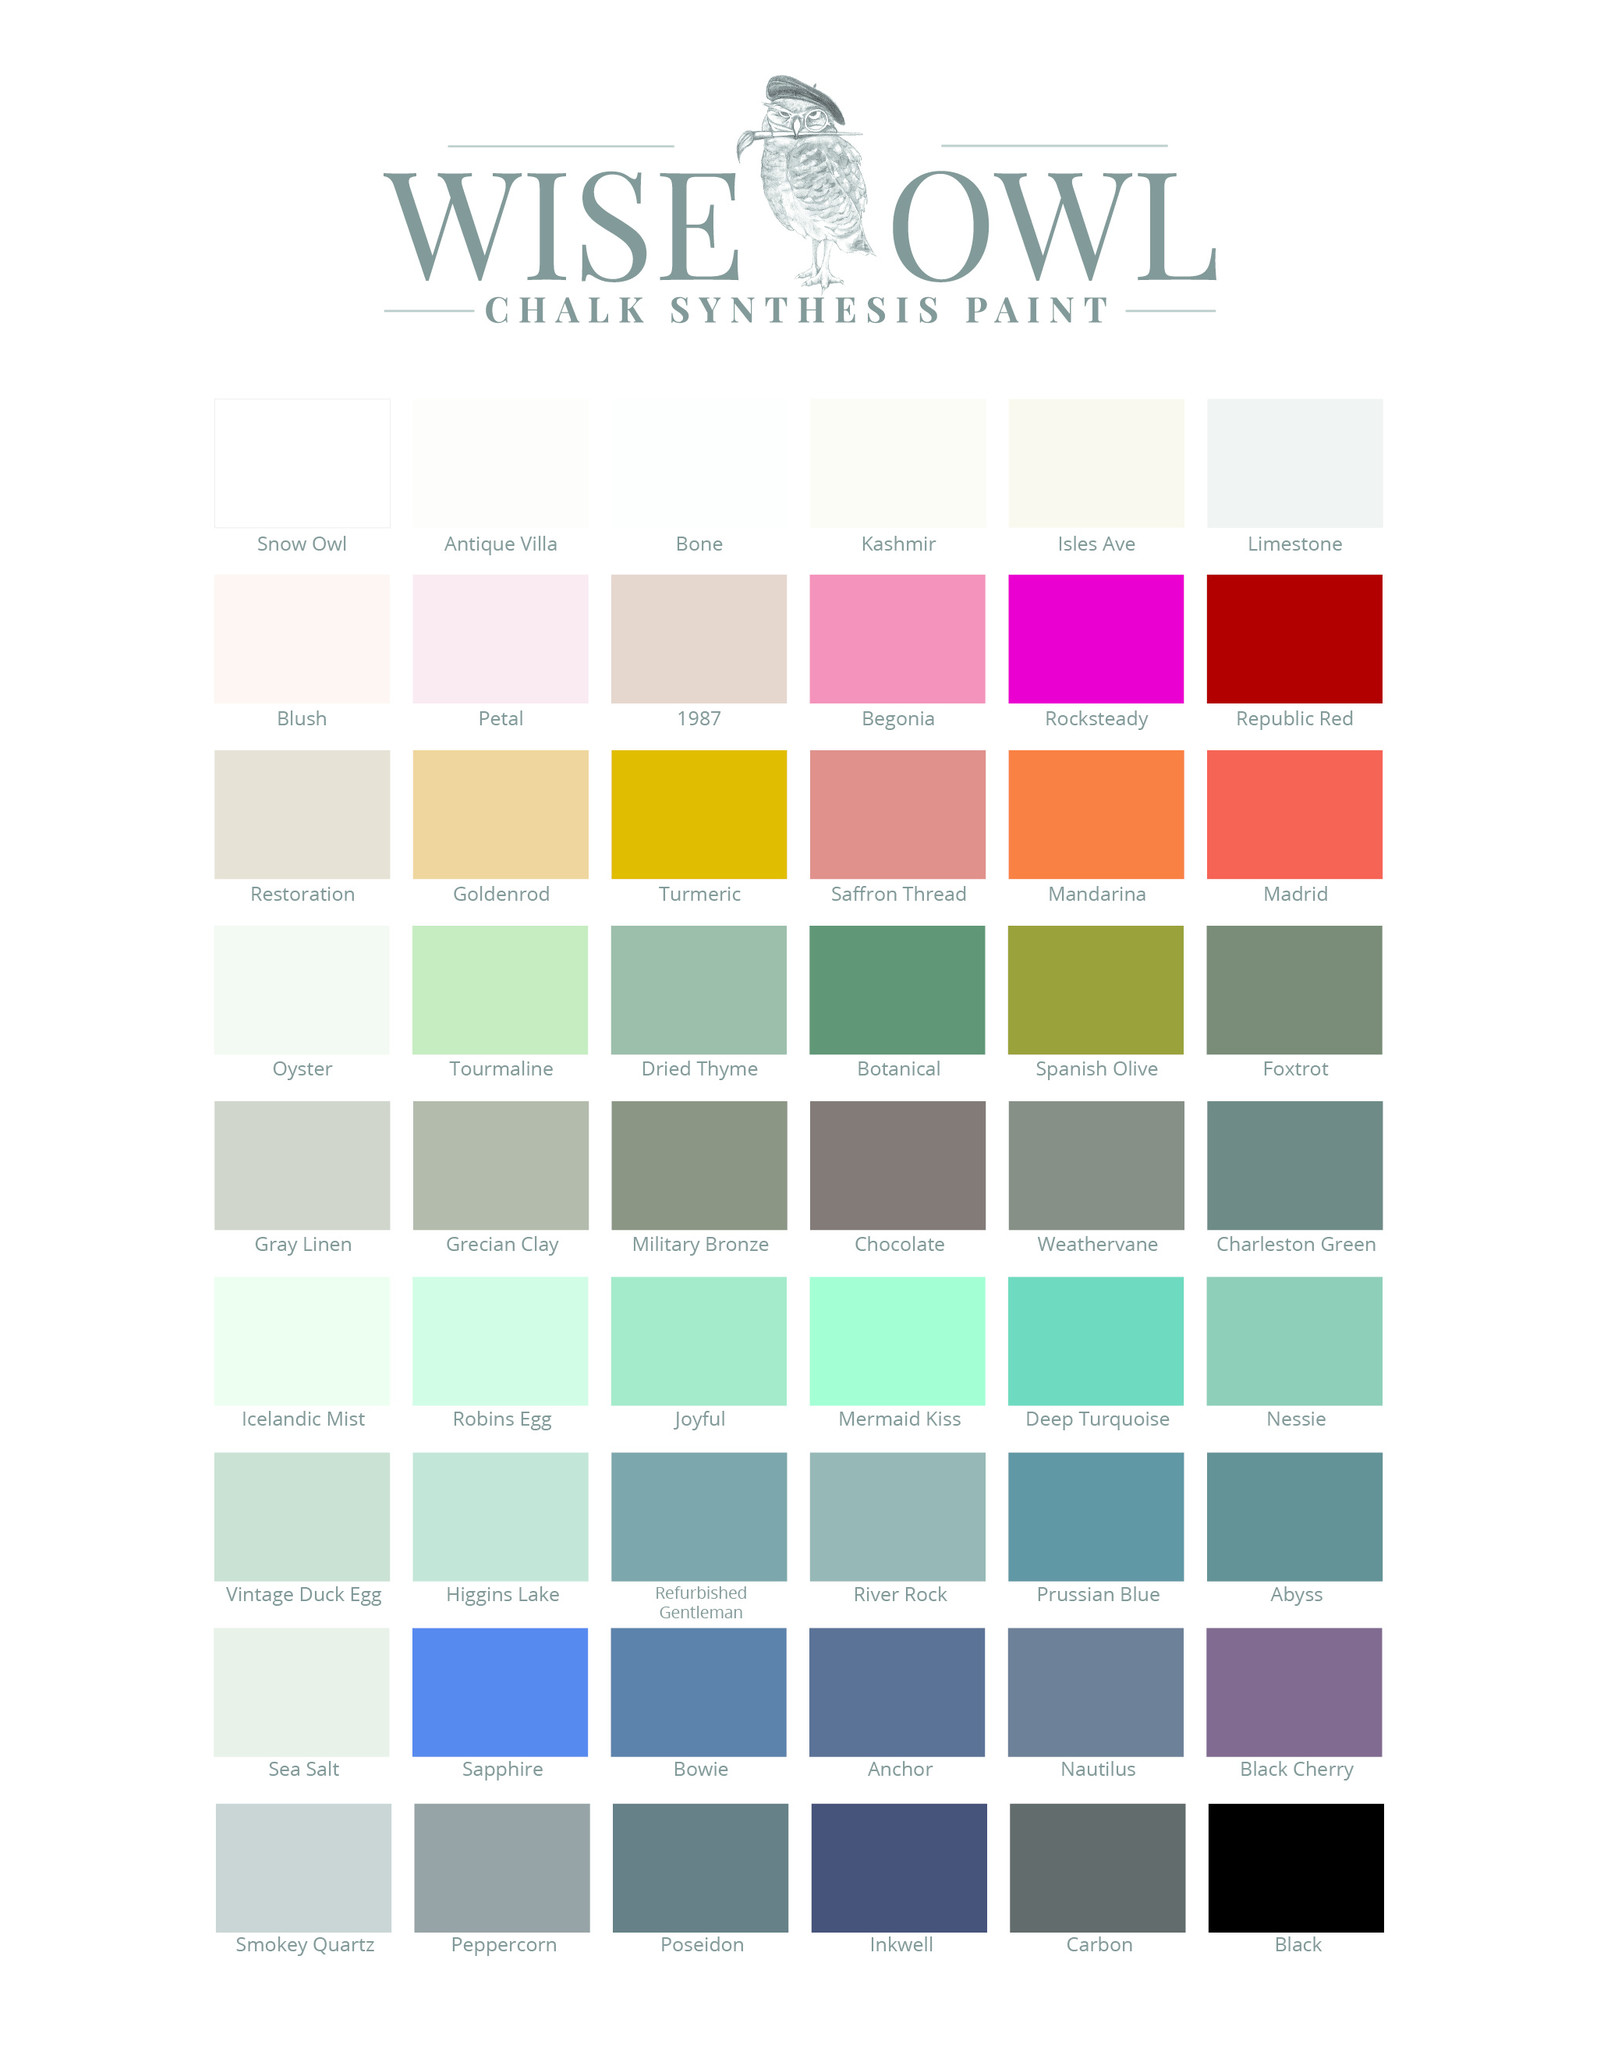 Wise Owl Paint Chalk Synthesis Paint-Botanical Pint